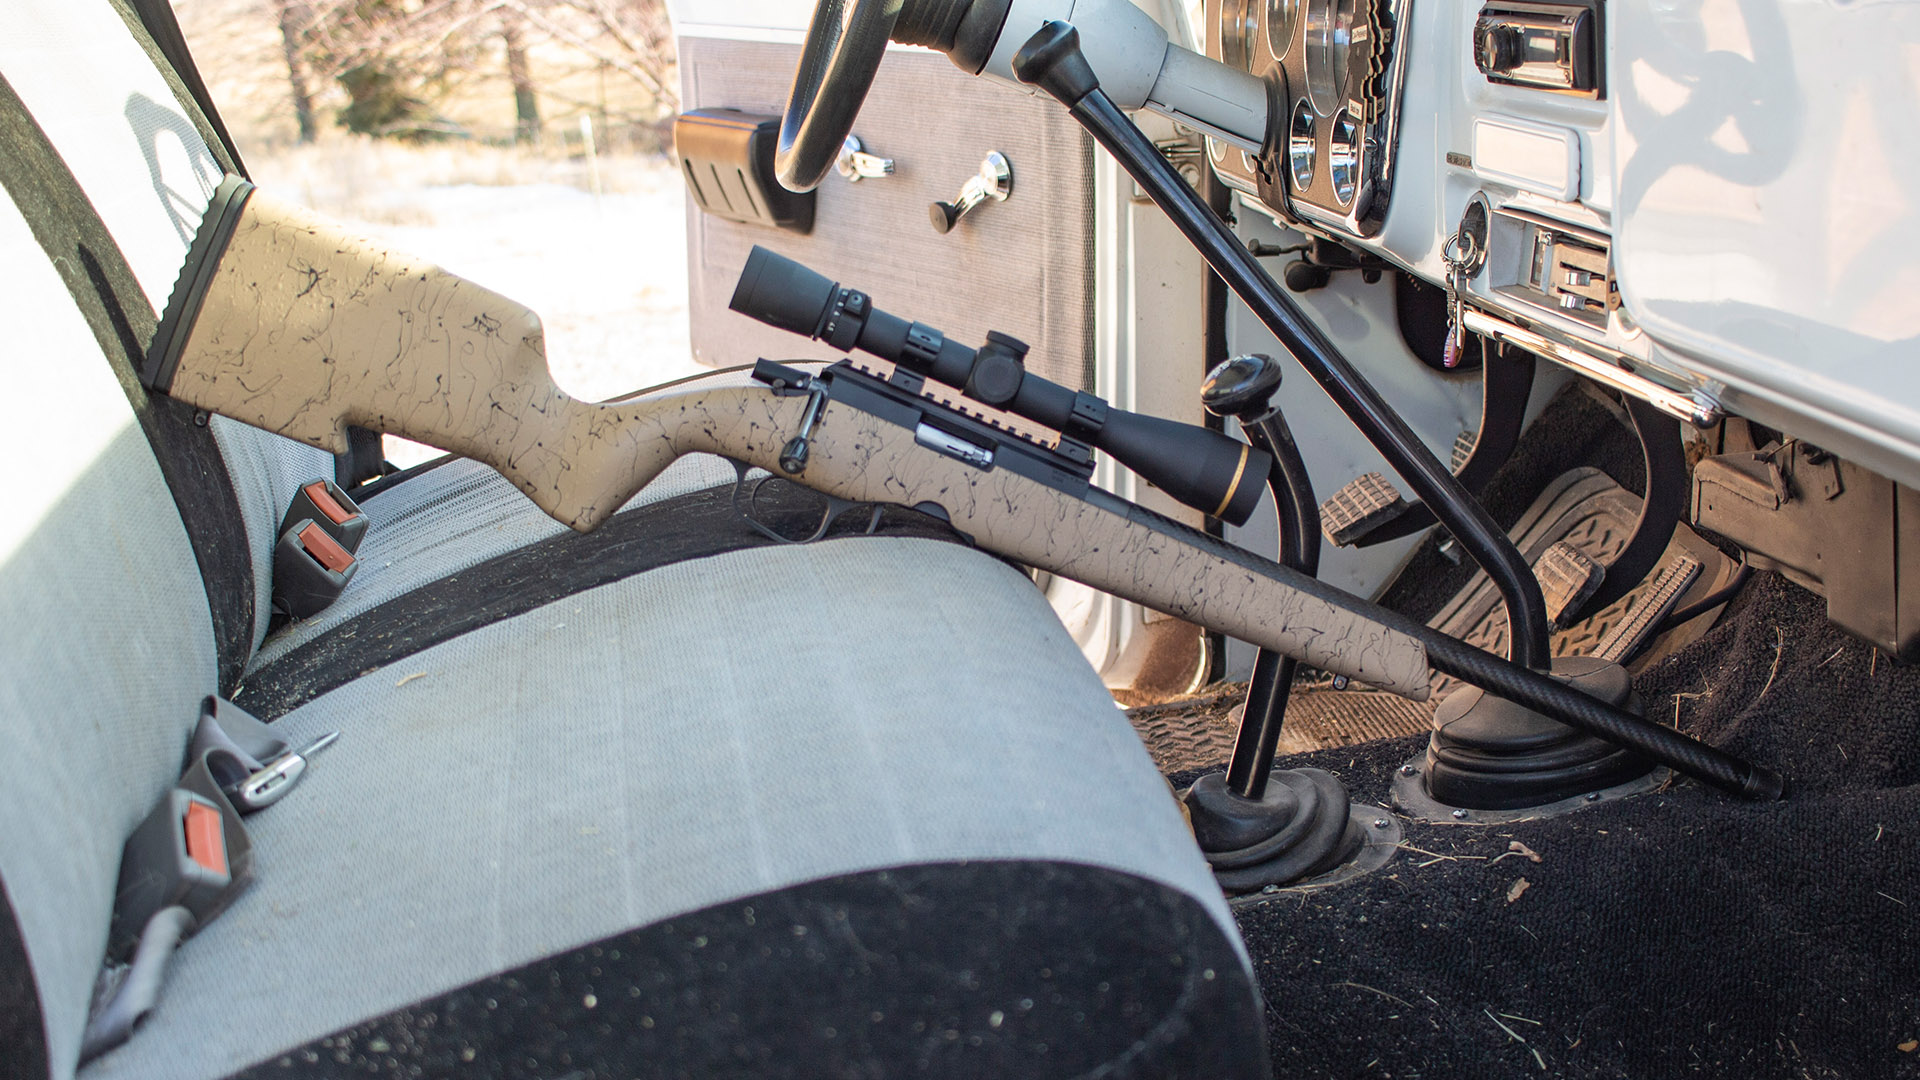 CHRISTENSEN ARMS DEBUTS THE RANGER 22 RIMFIRE RIFLE